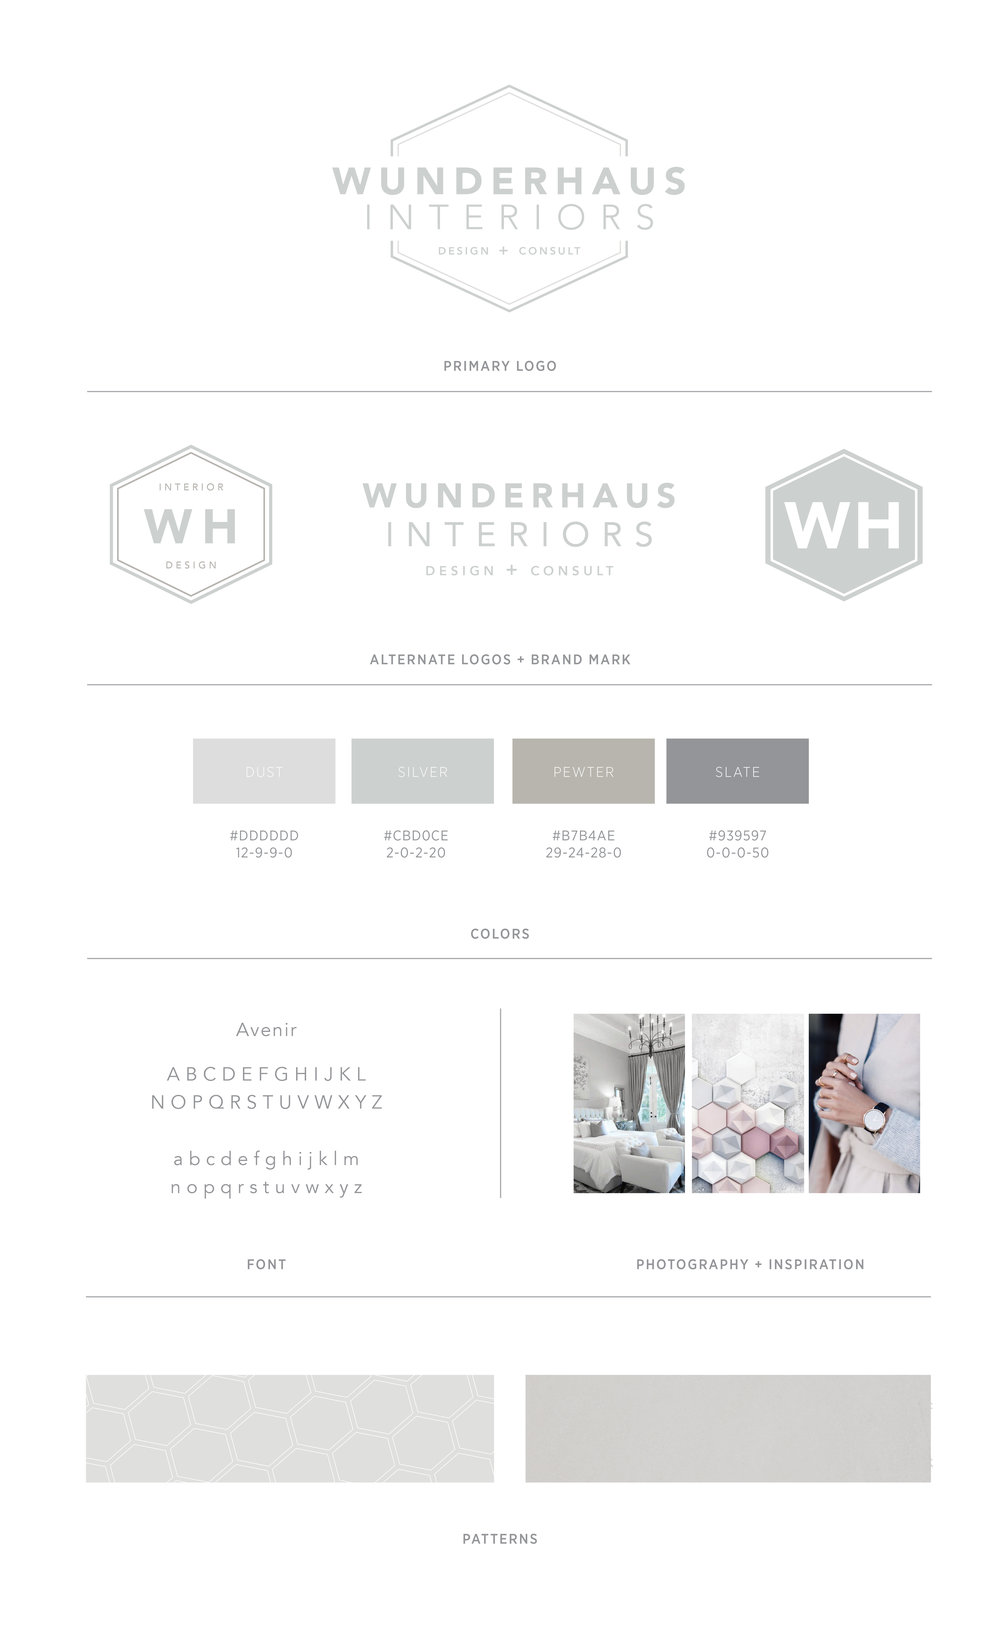 Branding design for Wunderhaus Interiors | casilong.com #casilongdesign #fearlesspursuit #branding #branddesign